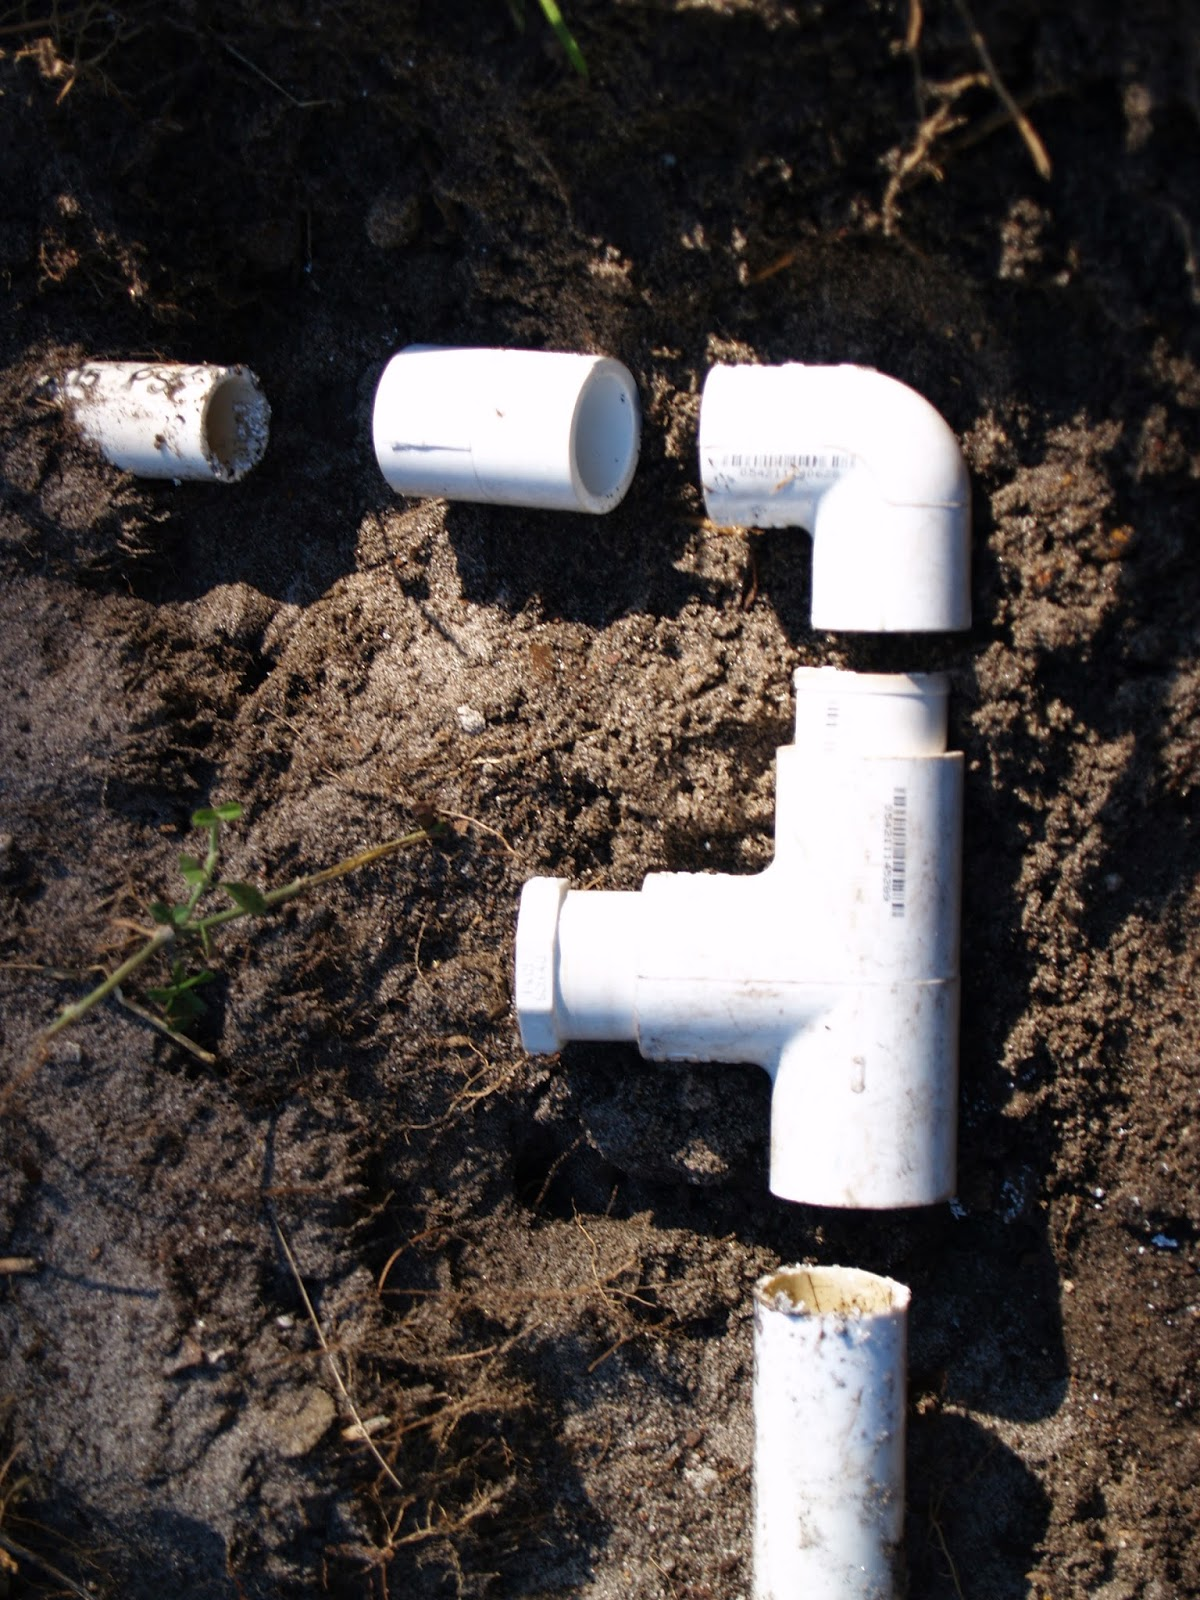 Sprinkler System Troubleshooting and Lawn Irrigation